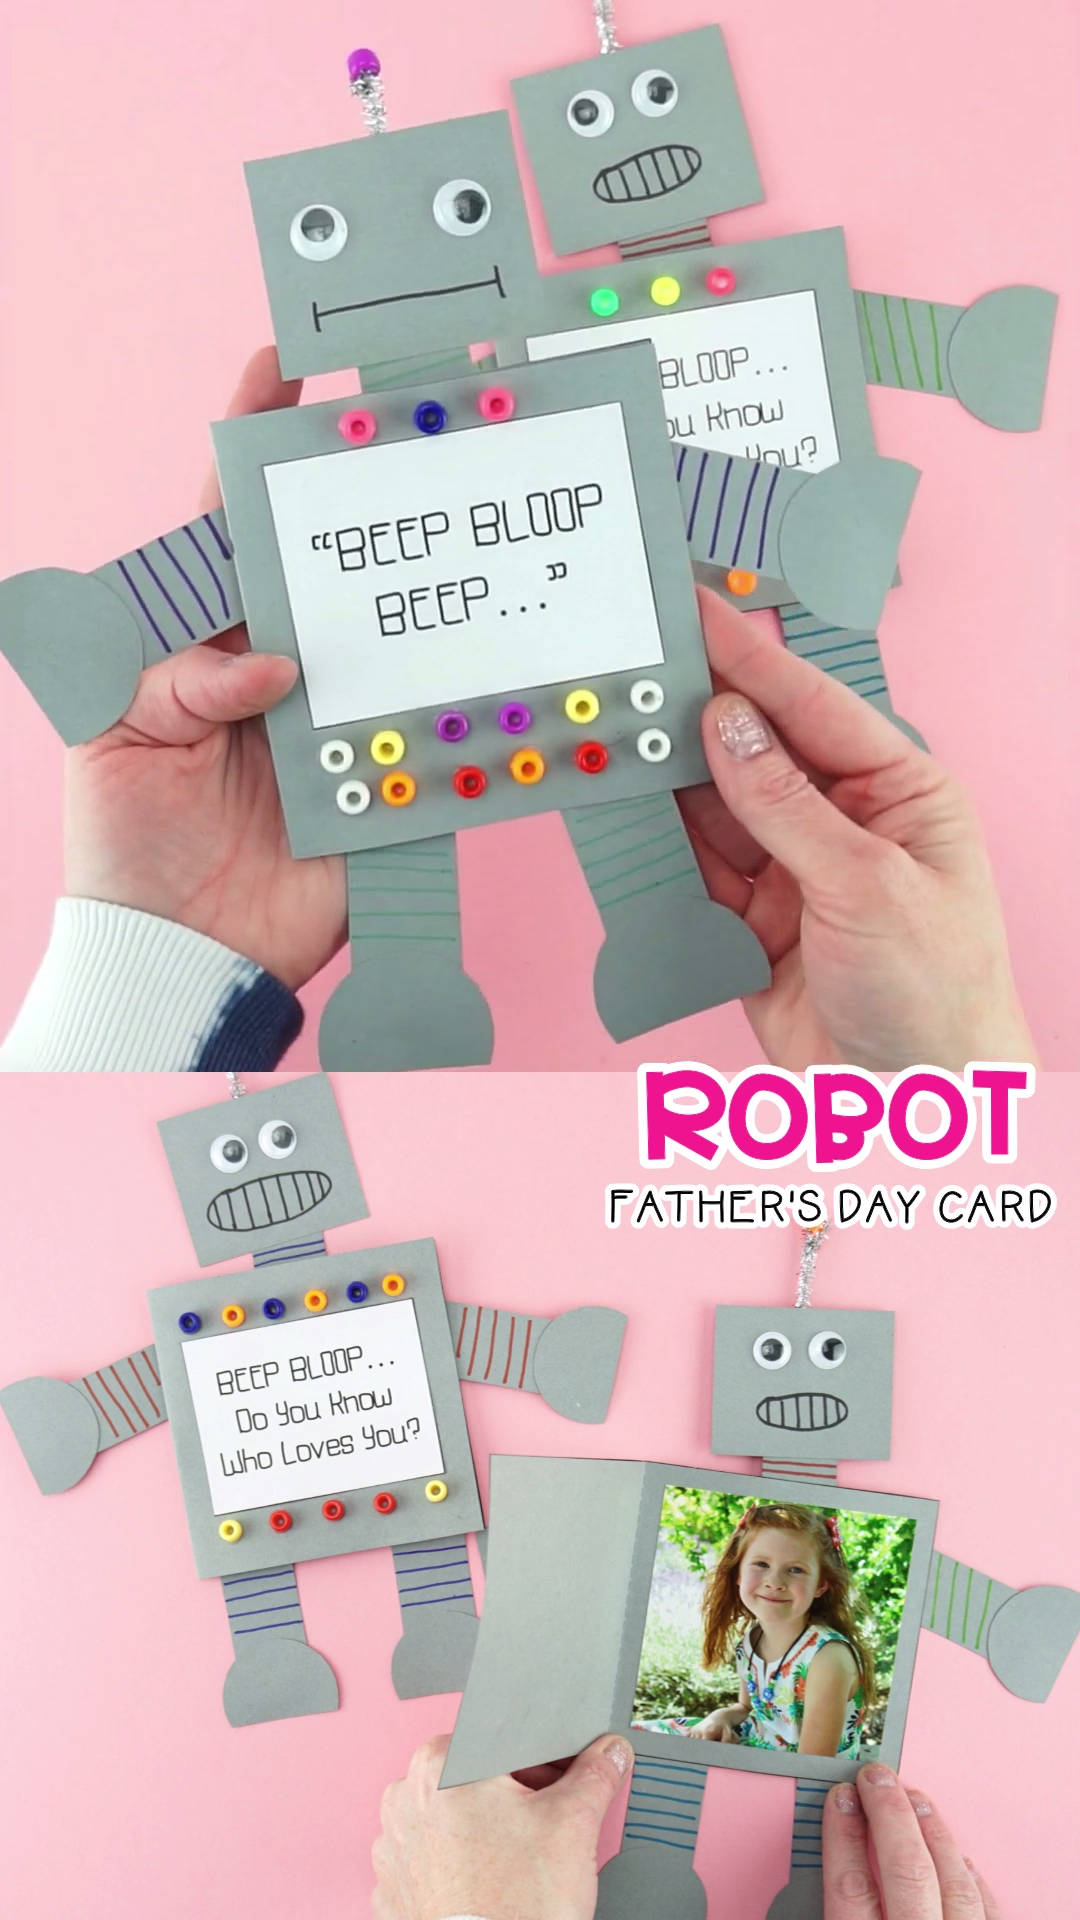 How to Make a Robot Father's Day Card